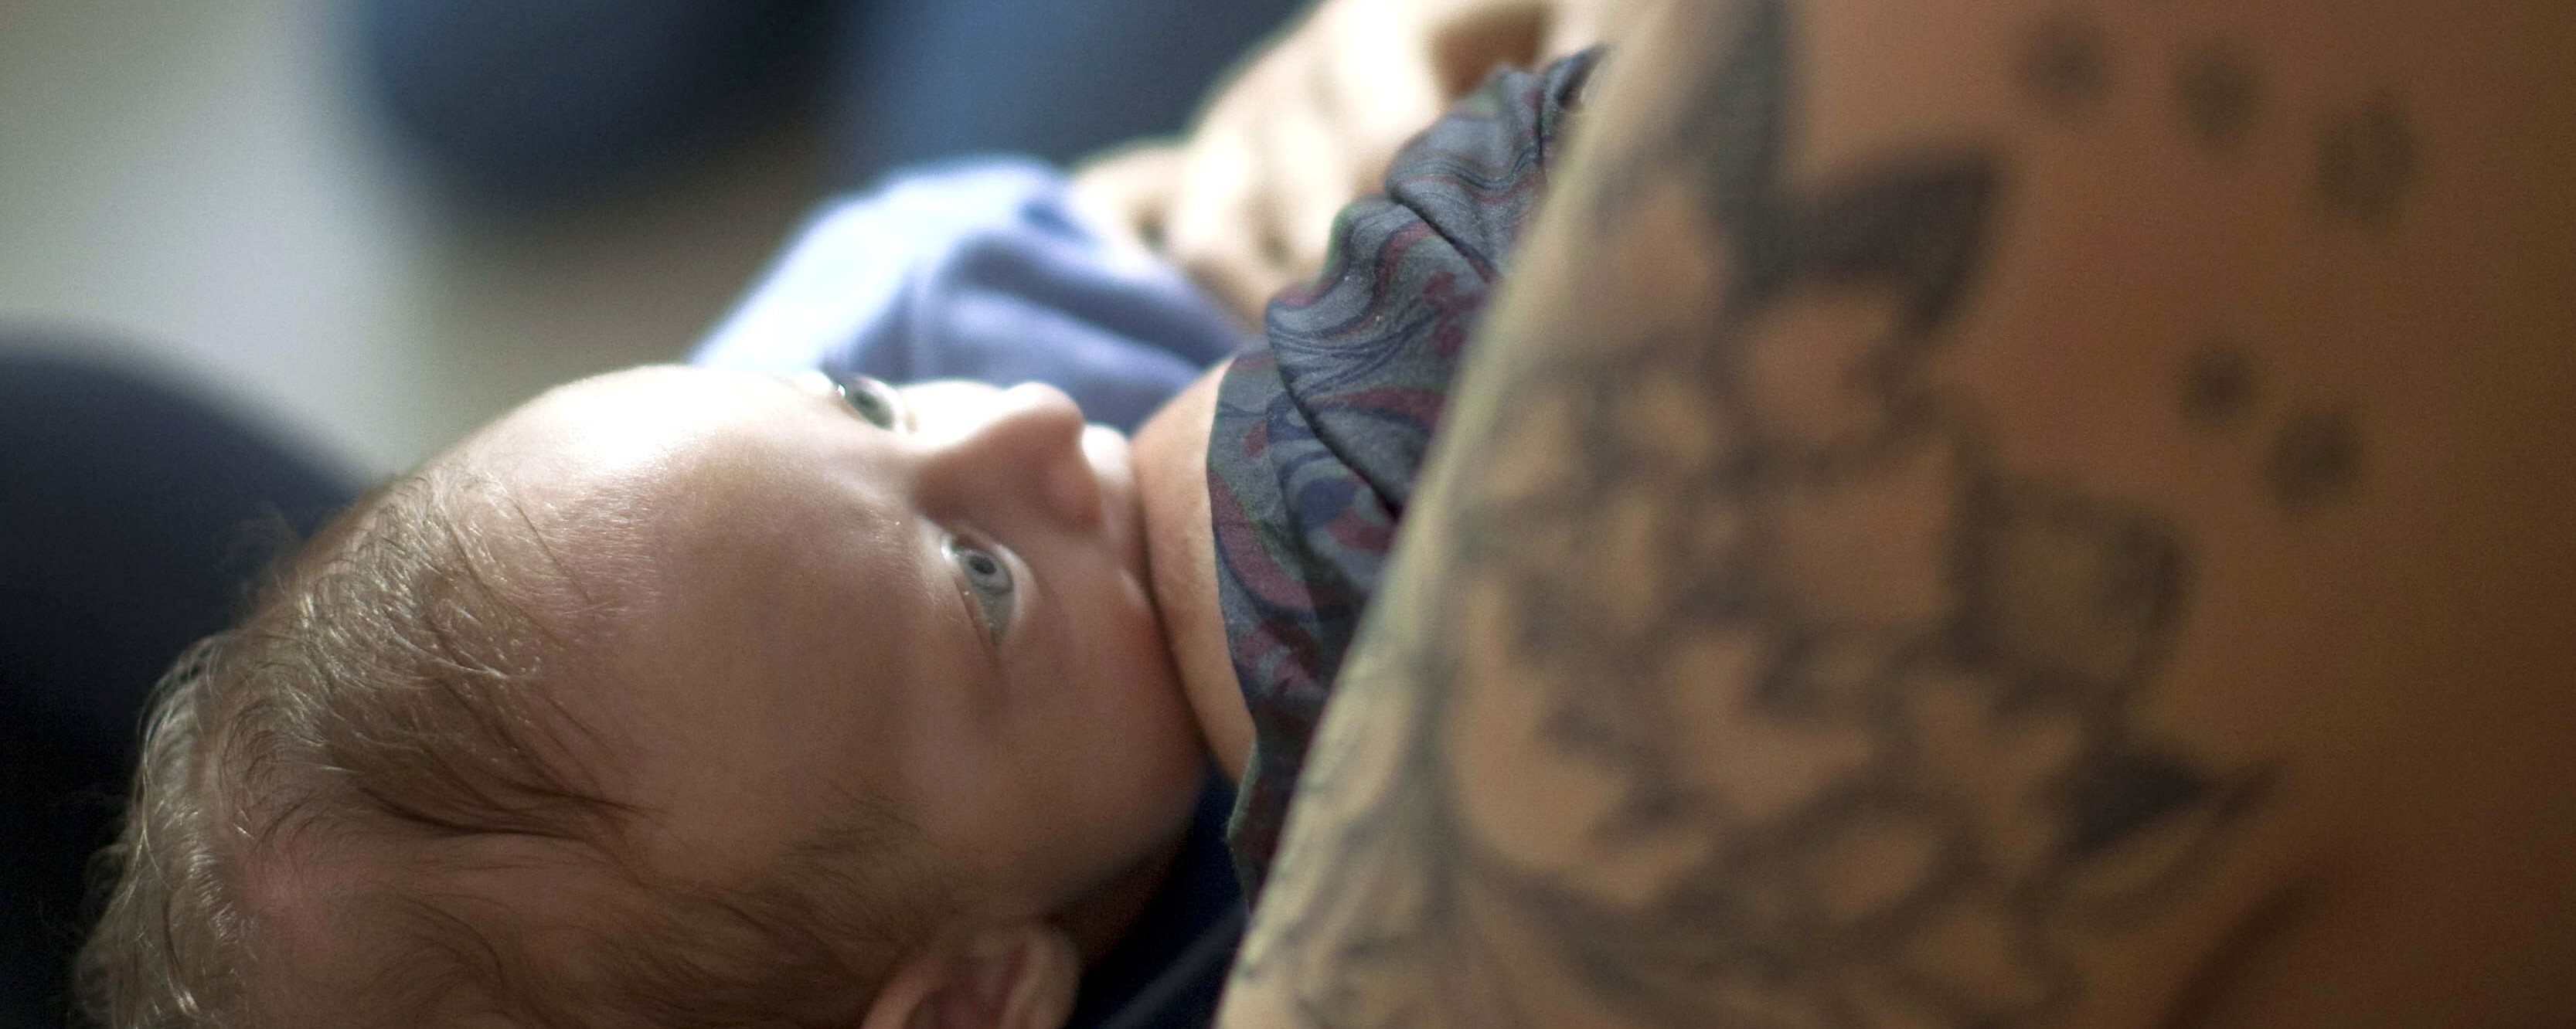 Judge Stops Mother From Breastfeeding Because She Got Tattoos